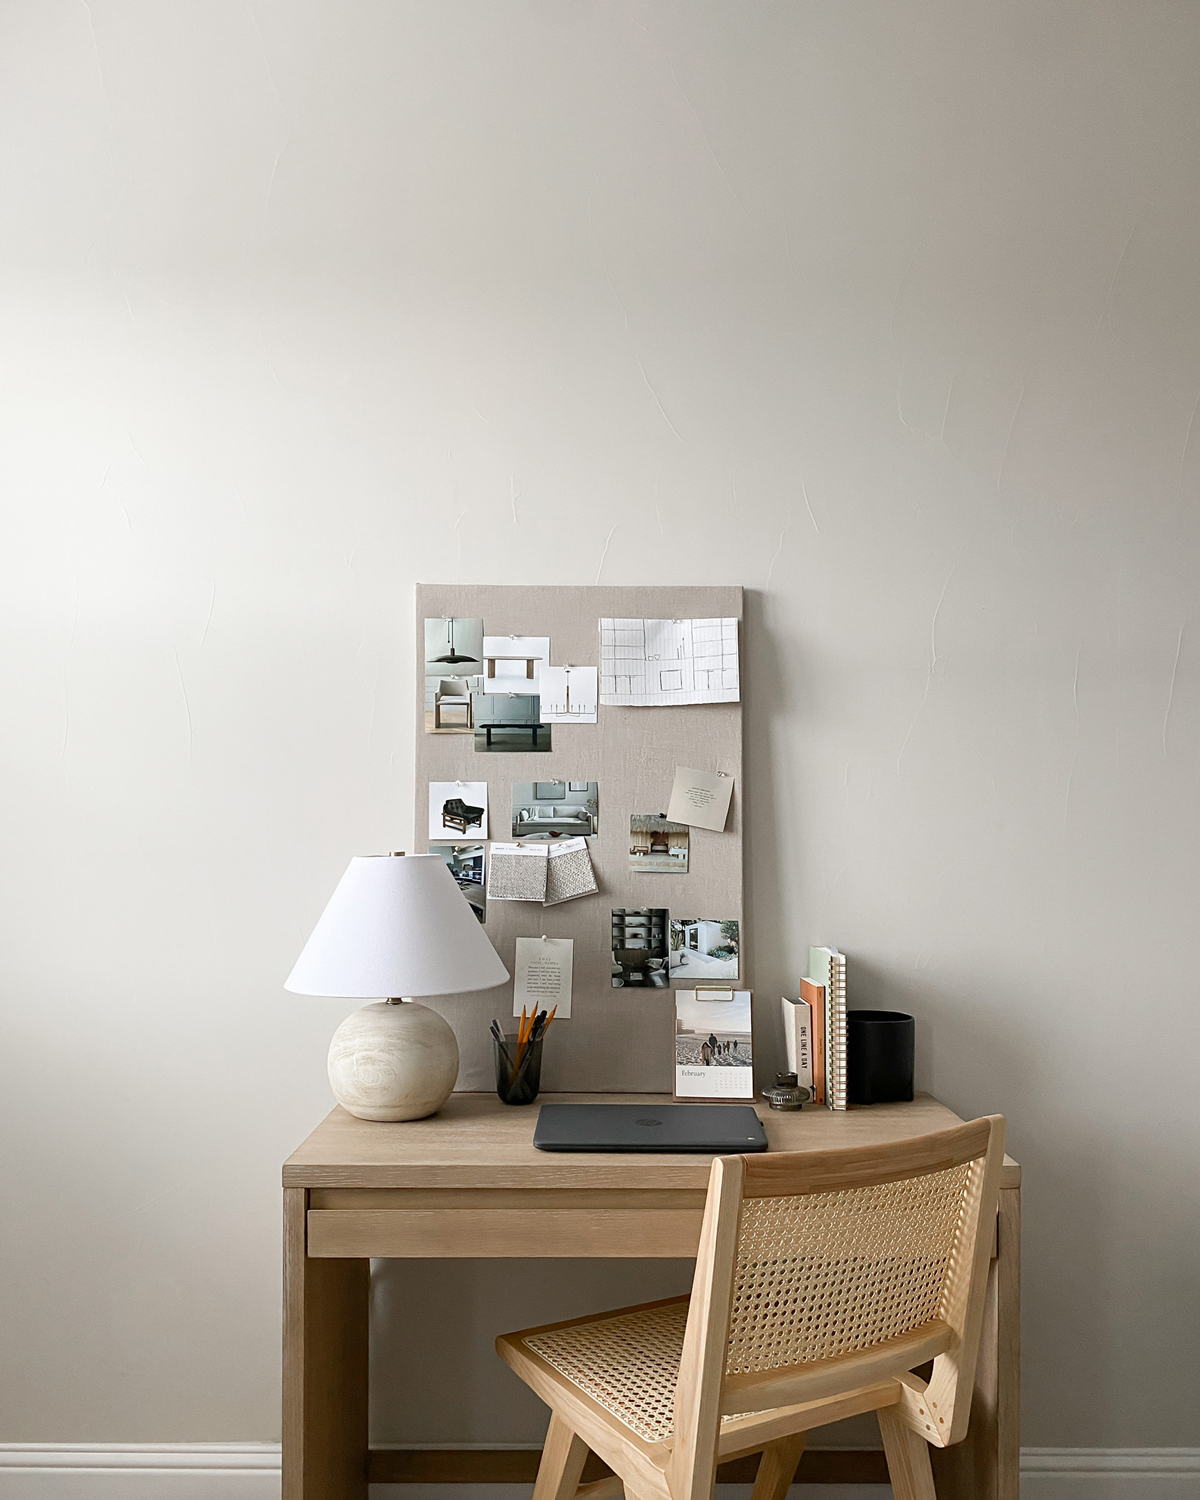 Bulletin board adorned with pictures standing on small desk with wooden chair